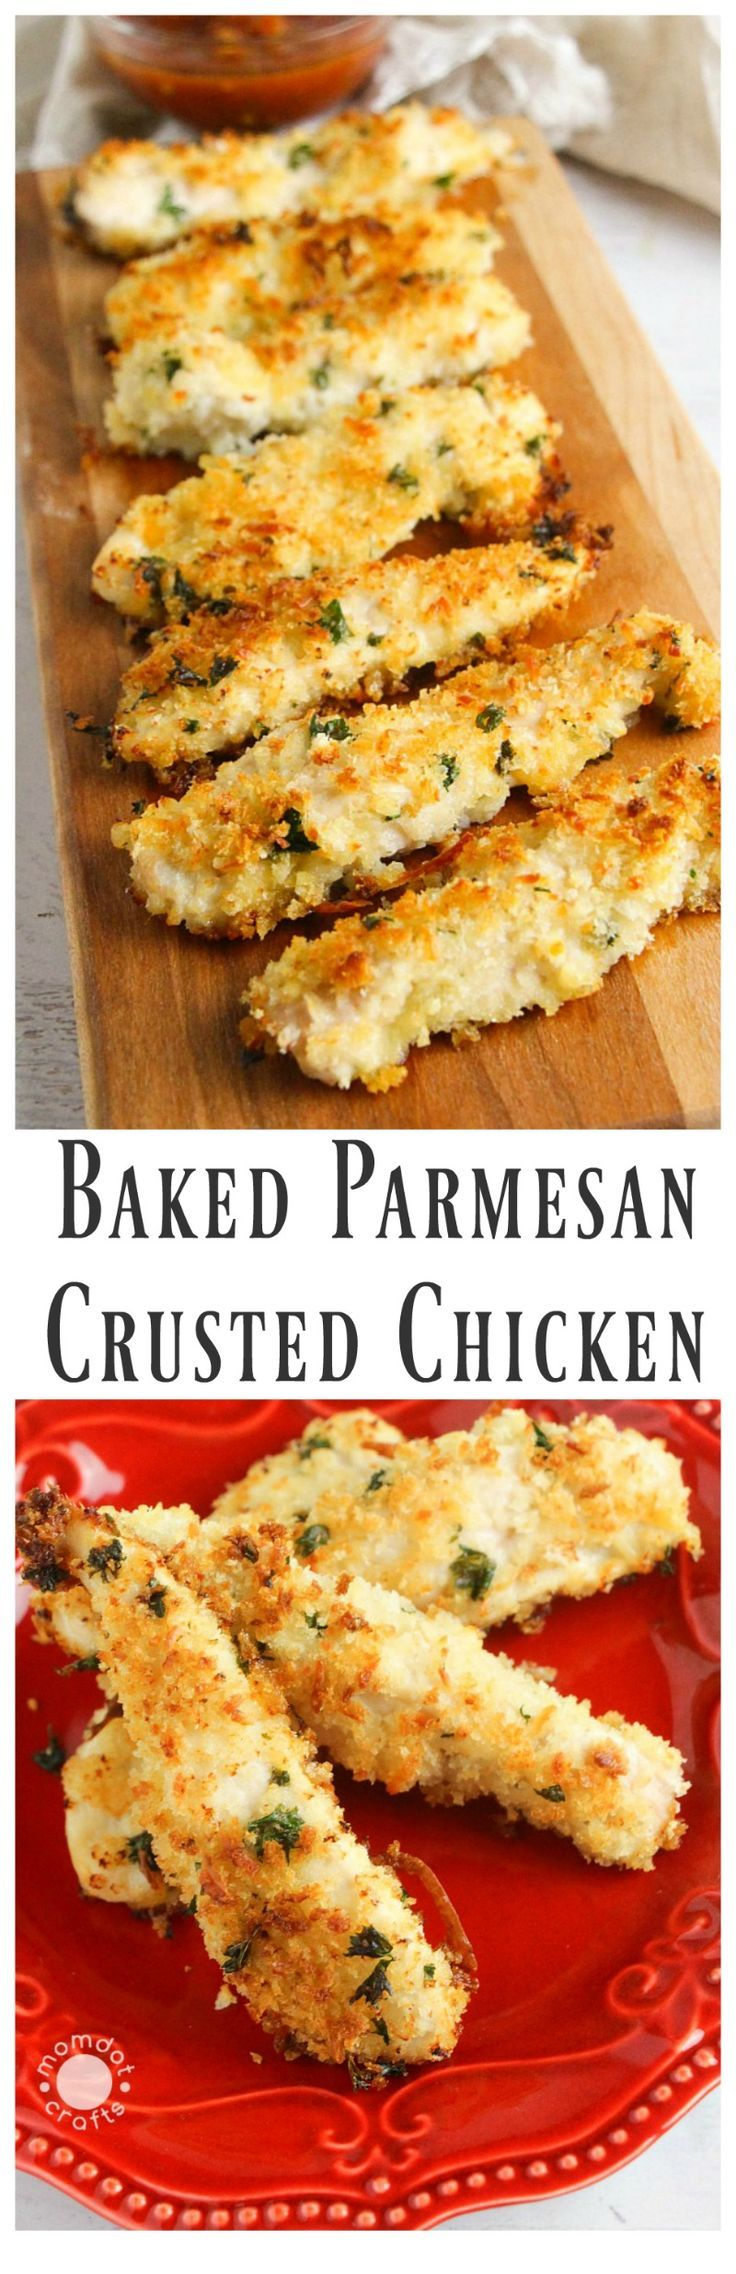 Baked Chicken Recipes Healthy Ovens Gluten Free